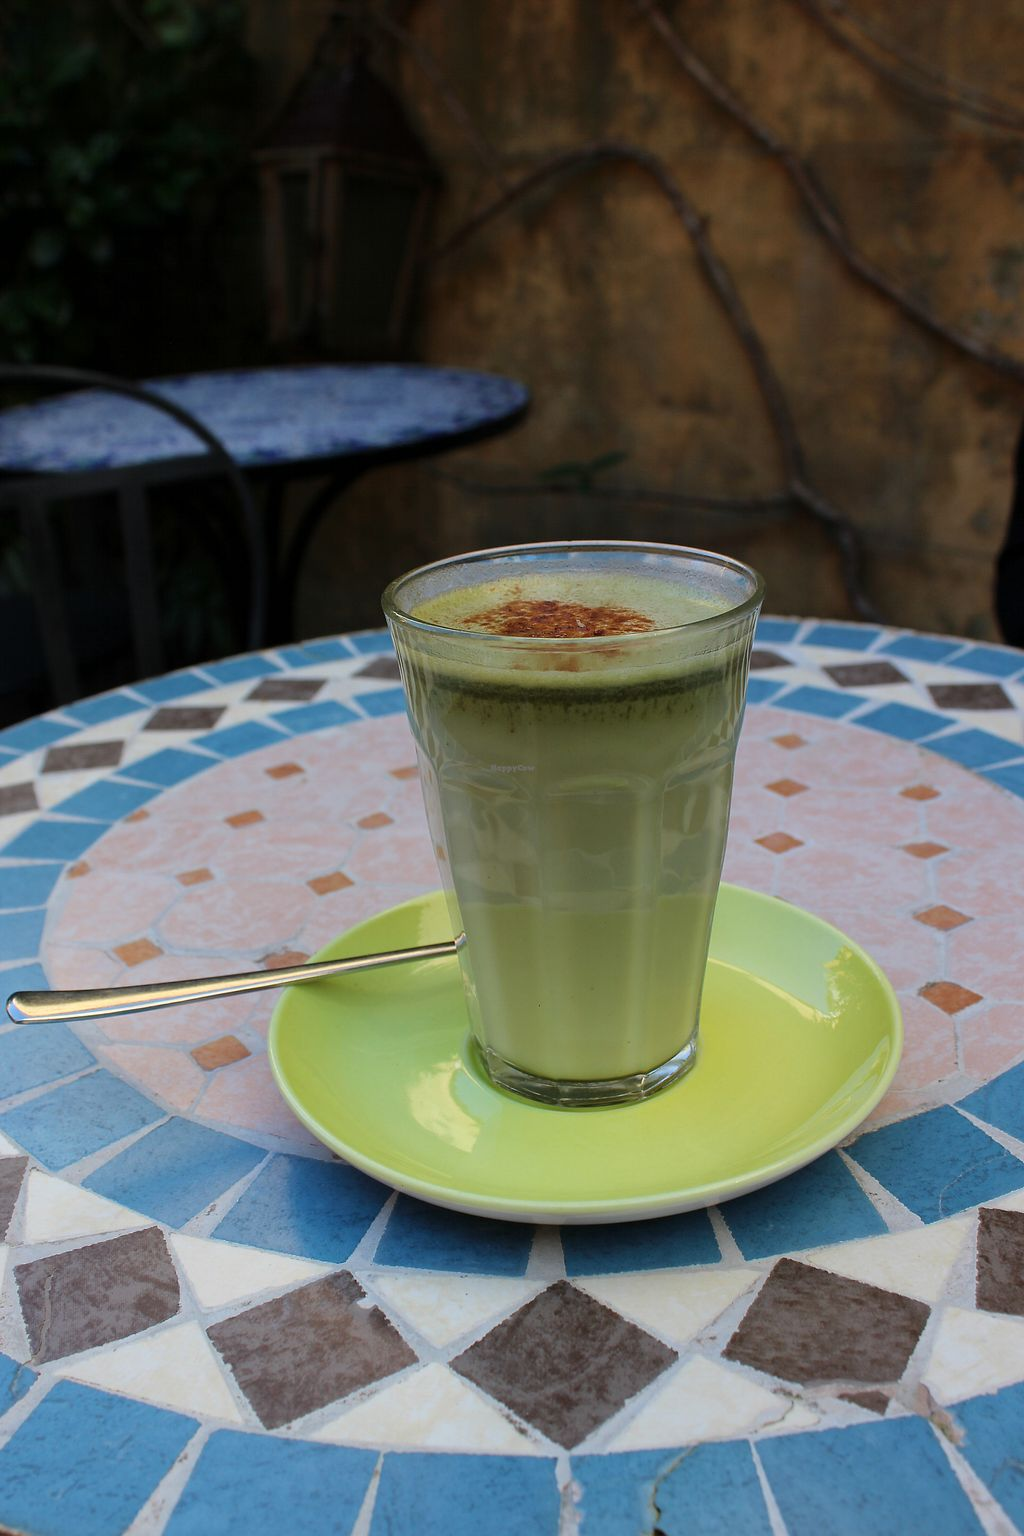 """Photo of Cafe Gaya  by <a href=""""/members/profile/hanamizu"""">hanamizu</a> <br/>vegan: matcha latte <br/> August 31, 2017  - <a href='/contact/abuse/image/23115/299454'>Report</a>"""